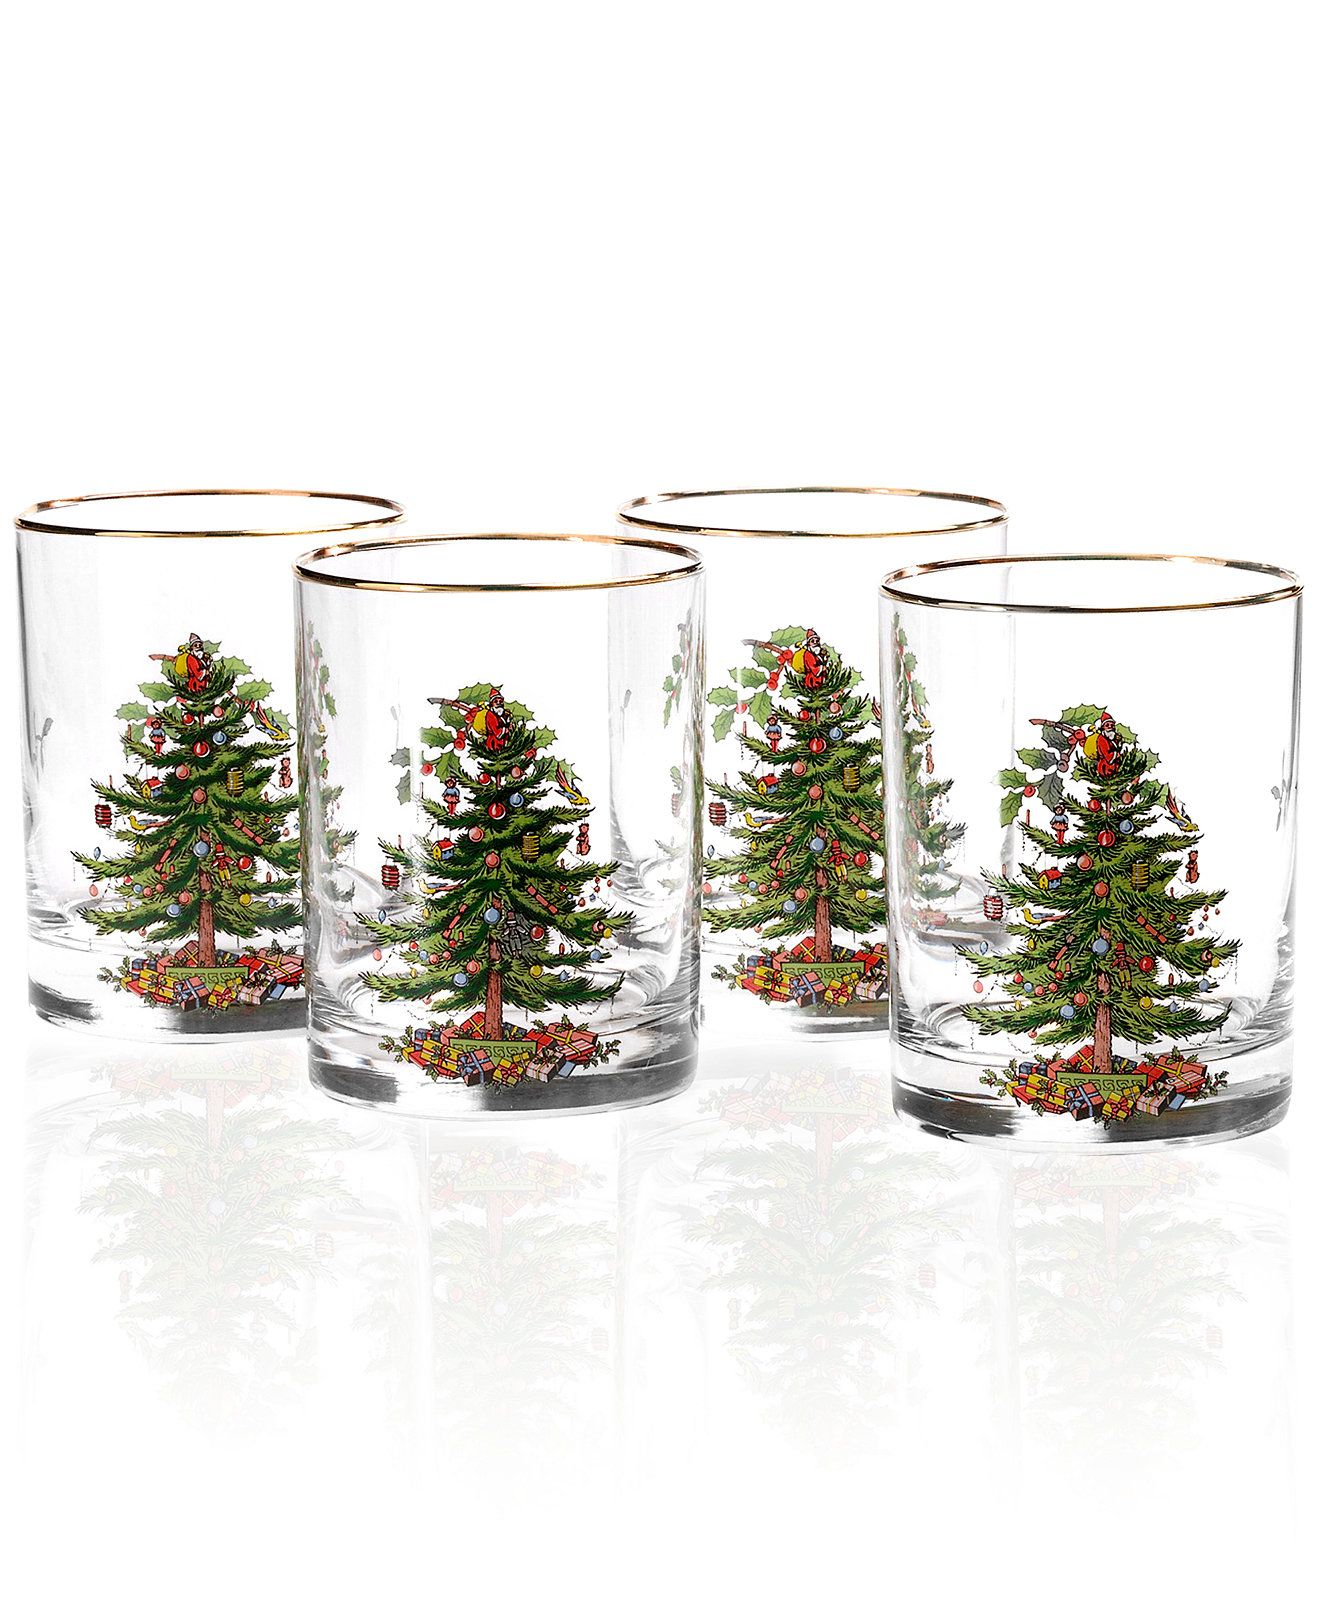 Spode Glassware, Set of 4 Christmas Tree Double Old Fashioned ...